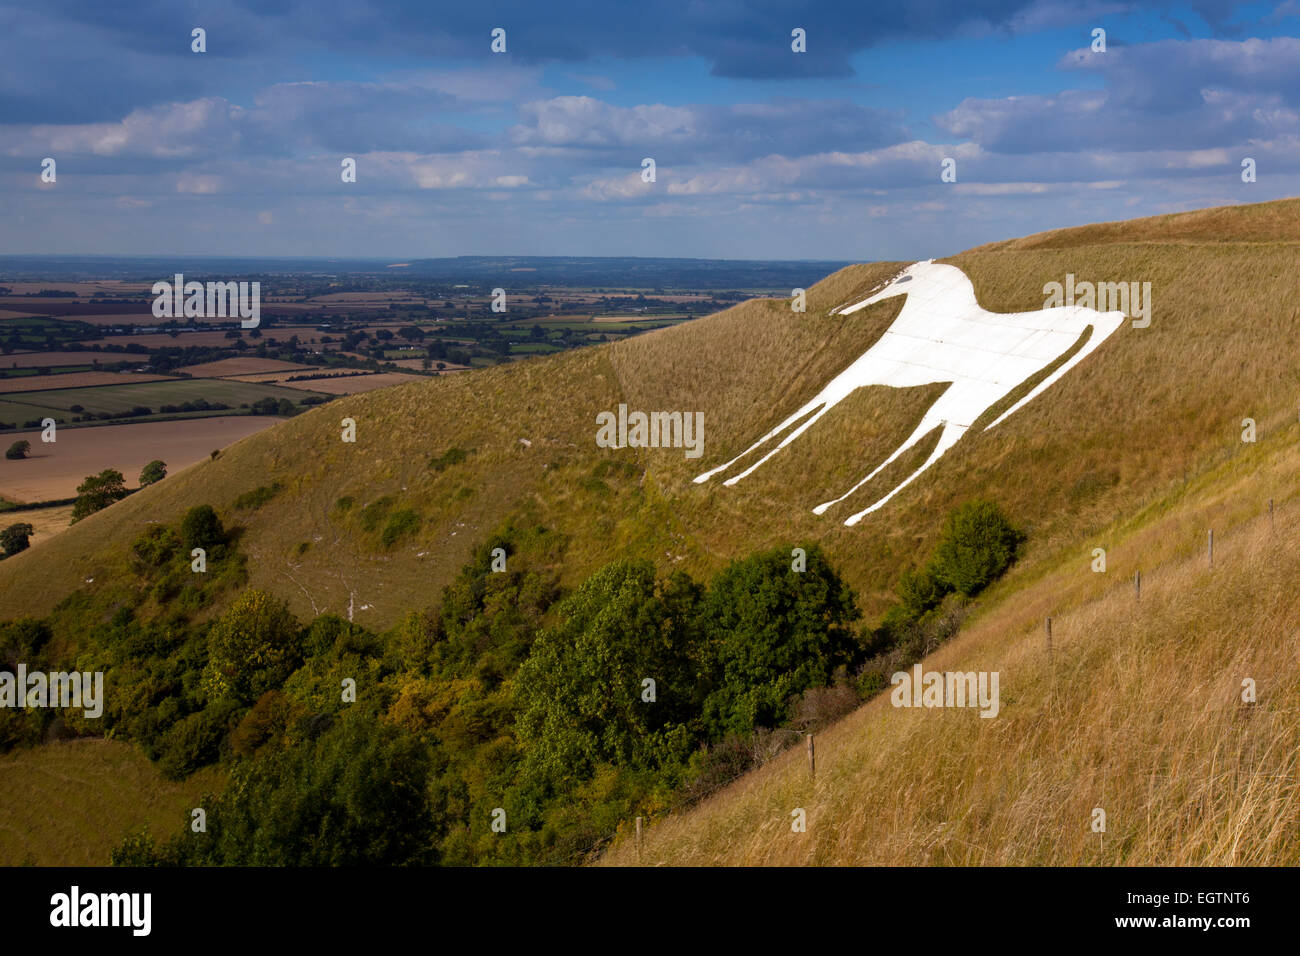 A landscape view of the Westbury White Horse on the edge of Bratton Downs, Wiltshire, England Stock Photo